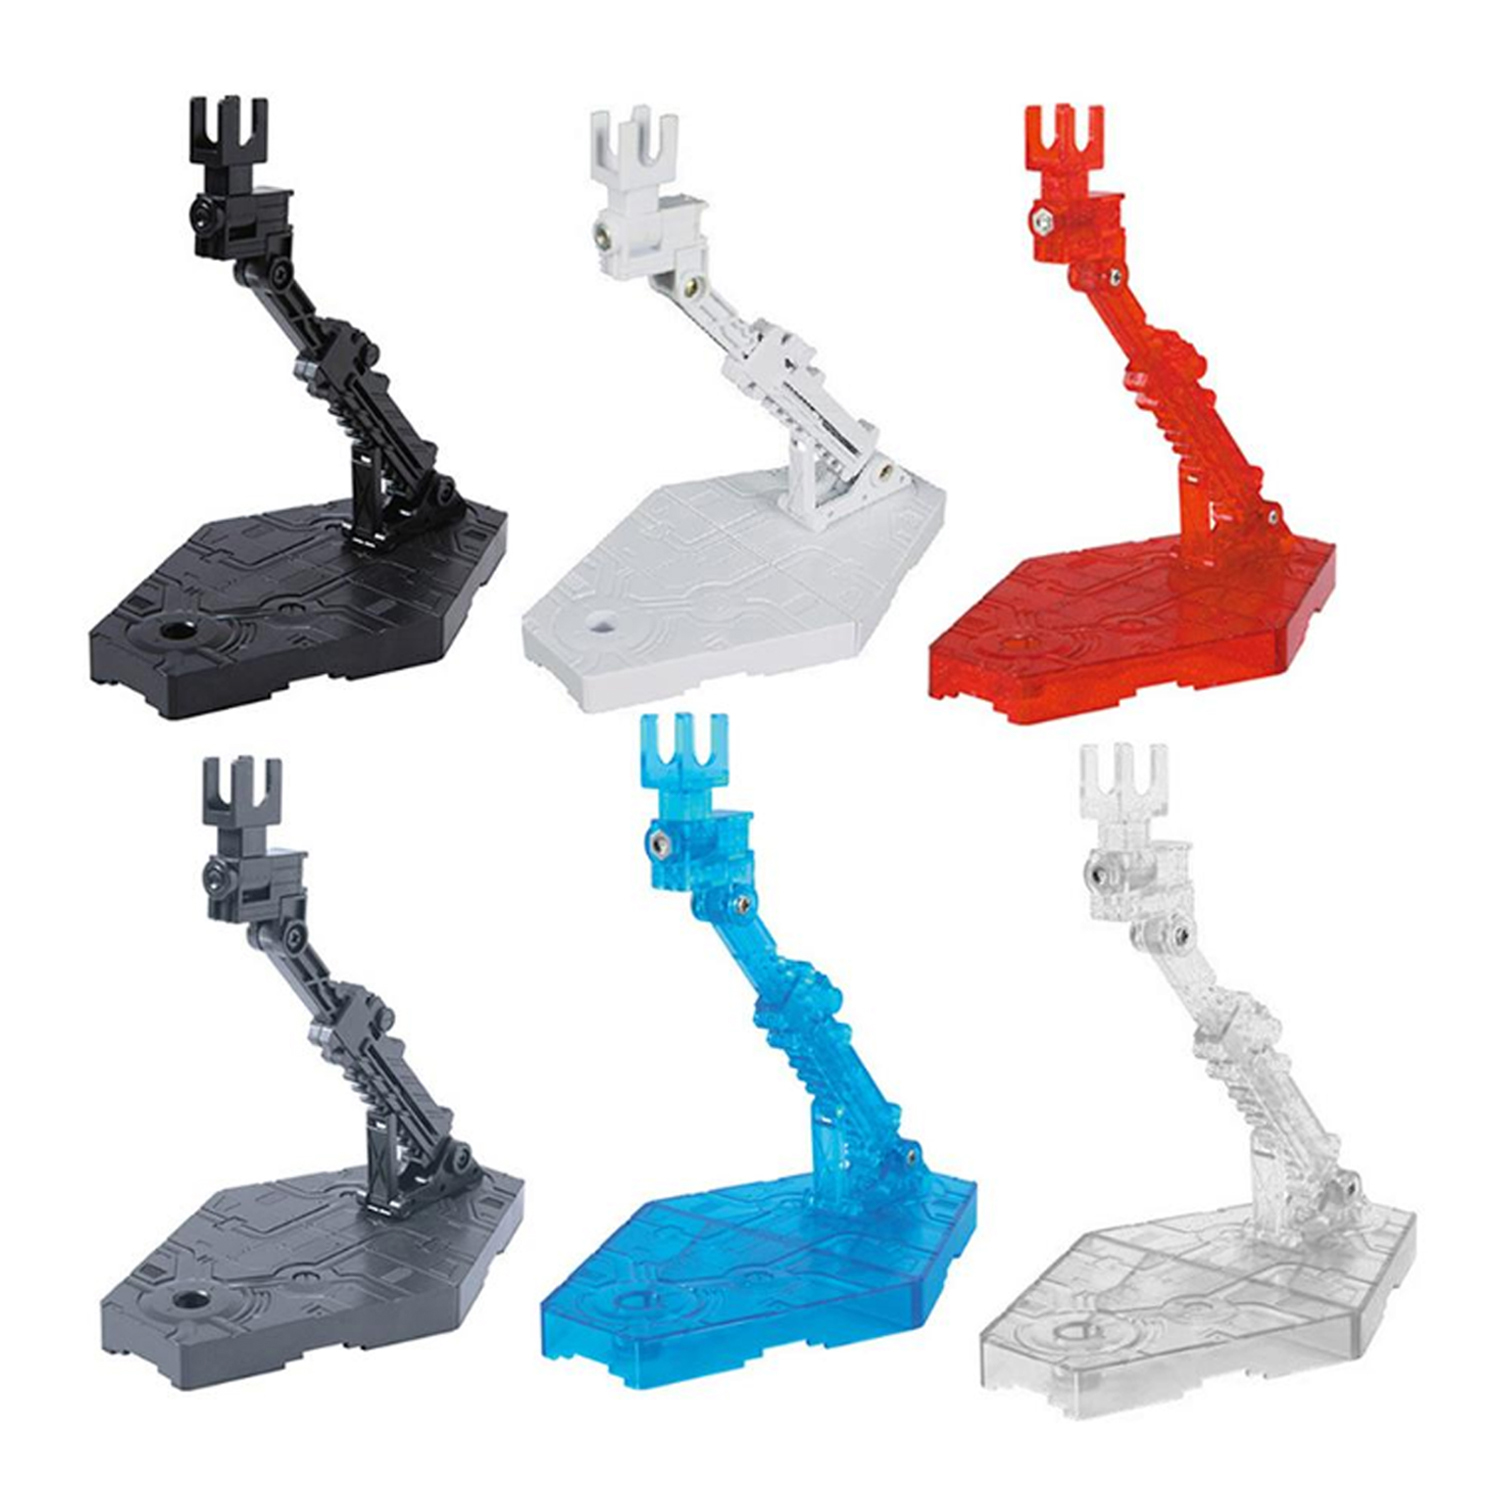 5PCS Universal Adjustable Action Figure Doll Model Support Display Stand Holder Base Bracket for RG HG SD <font><b>BB</b></font> <font><b>Gundam</b></font> 1/144 Toy image